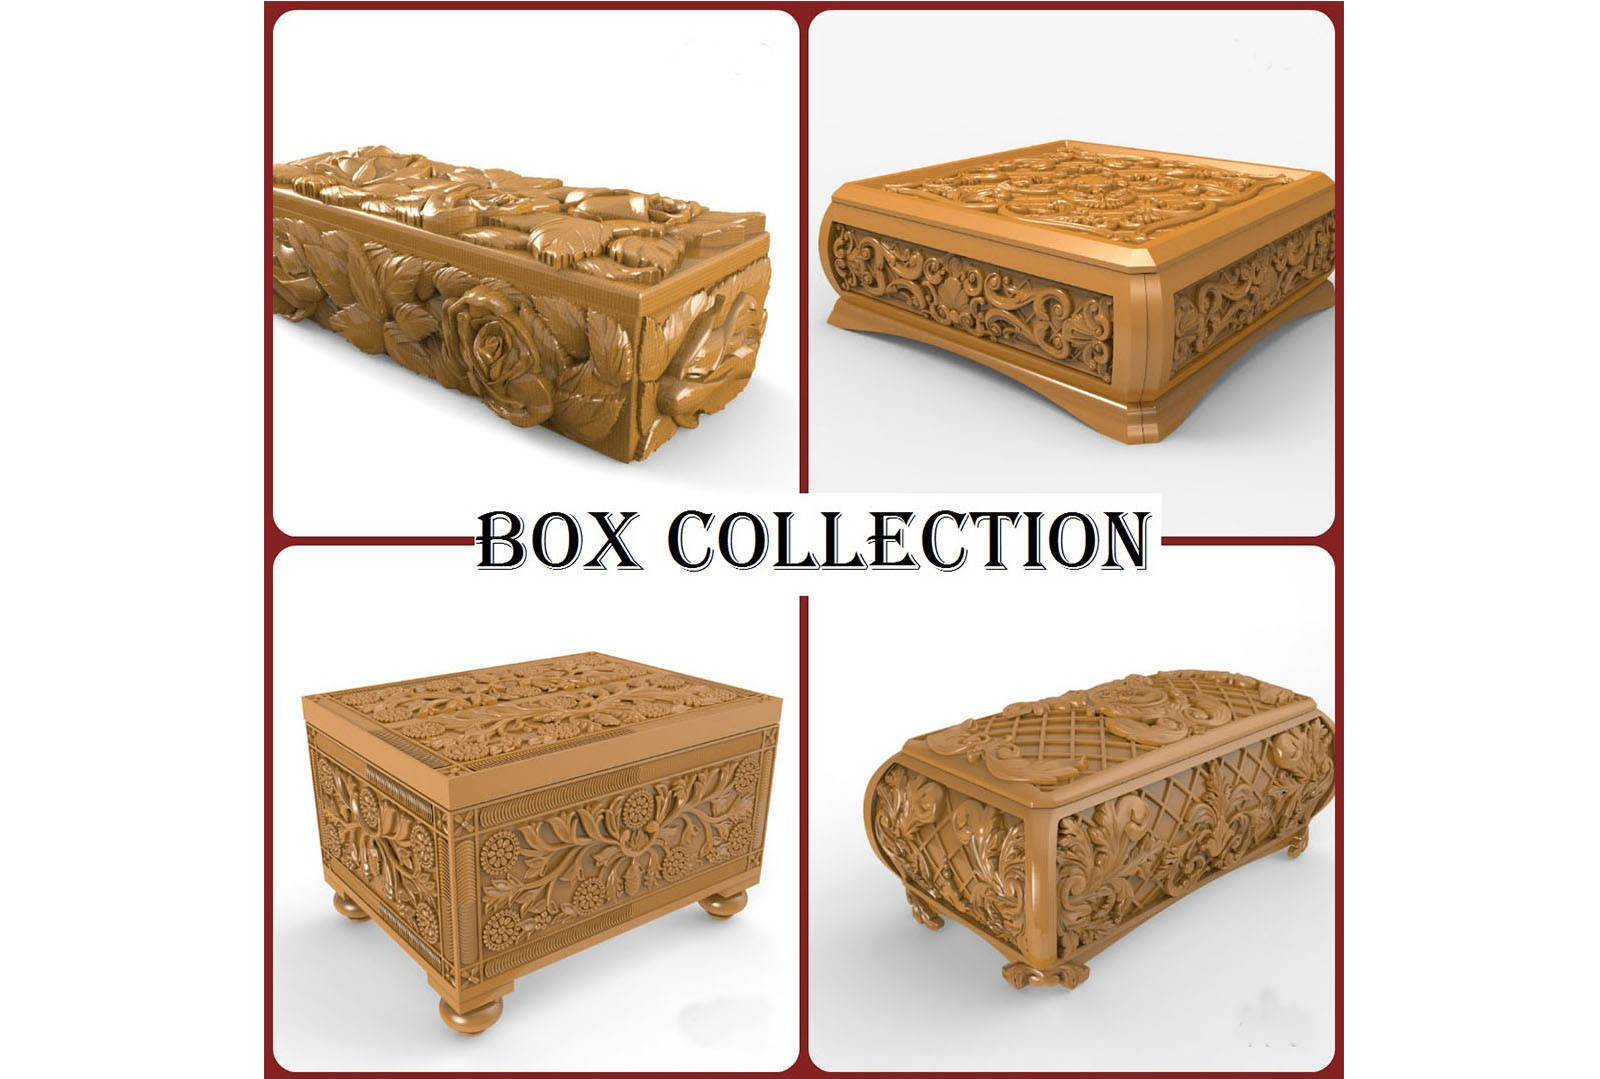 CNC G014 4PC BOX COLLECTION 3D STL Model